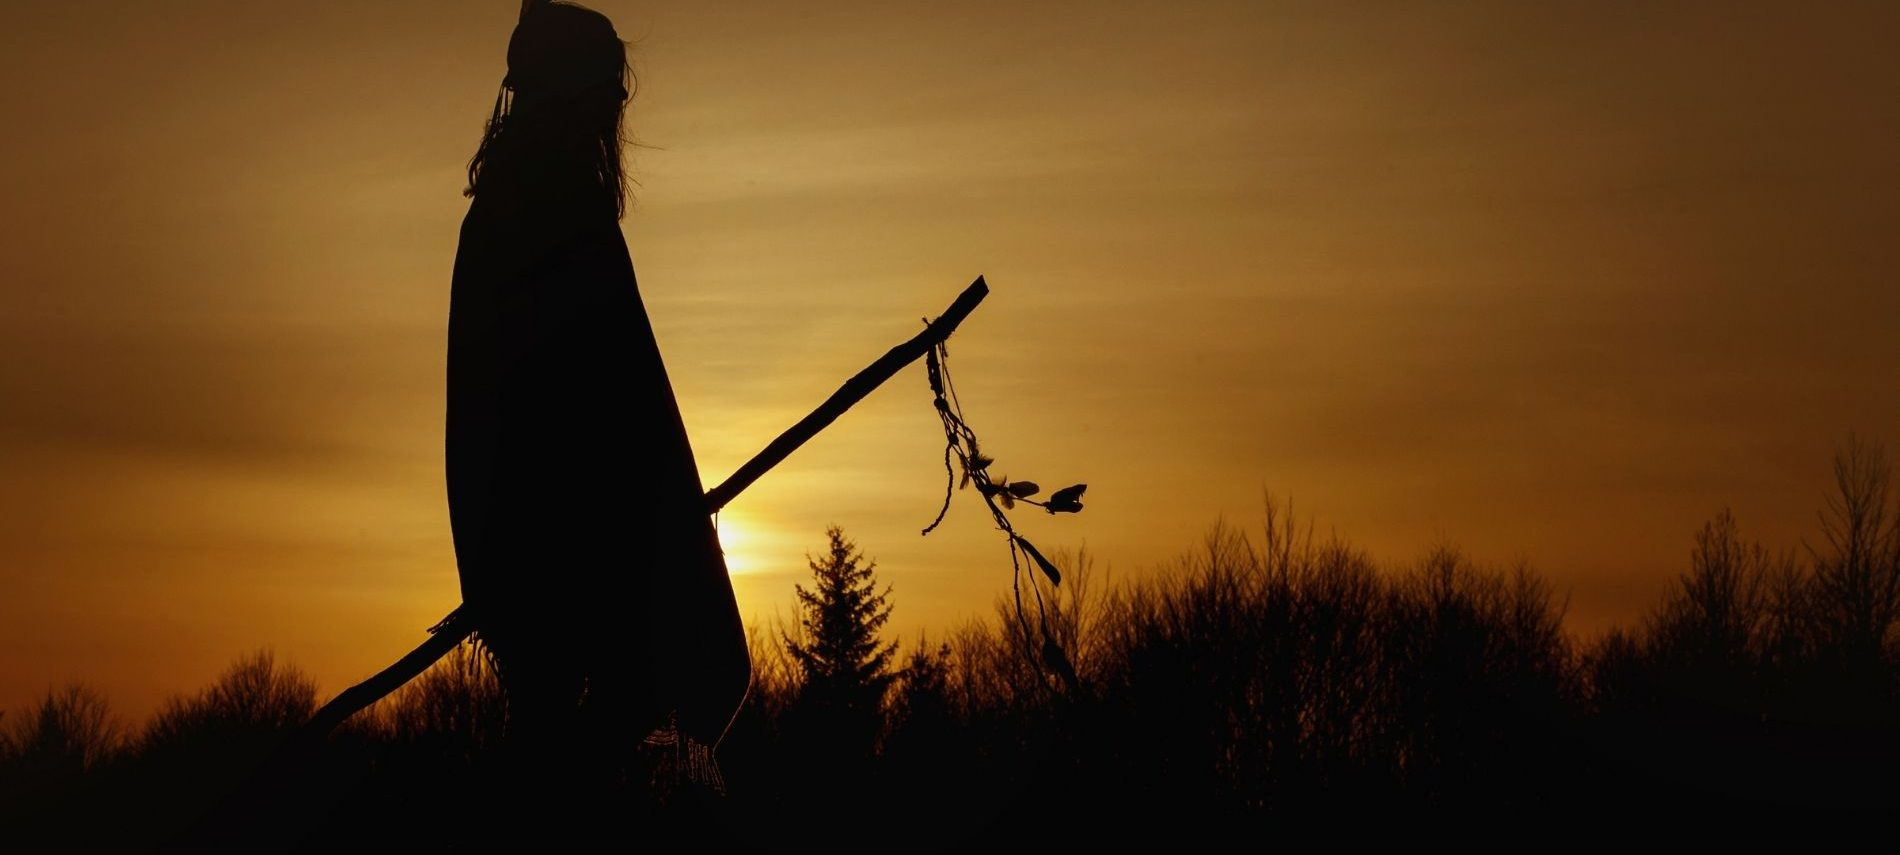 Silhouette at sunset of native american